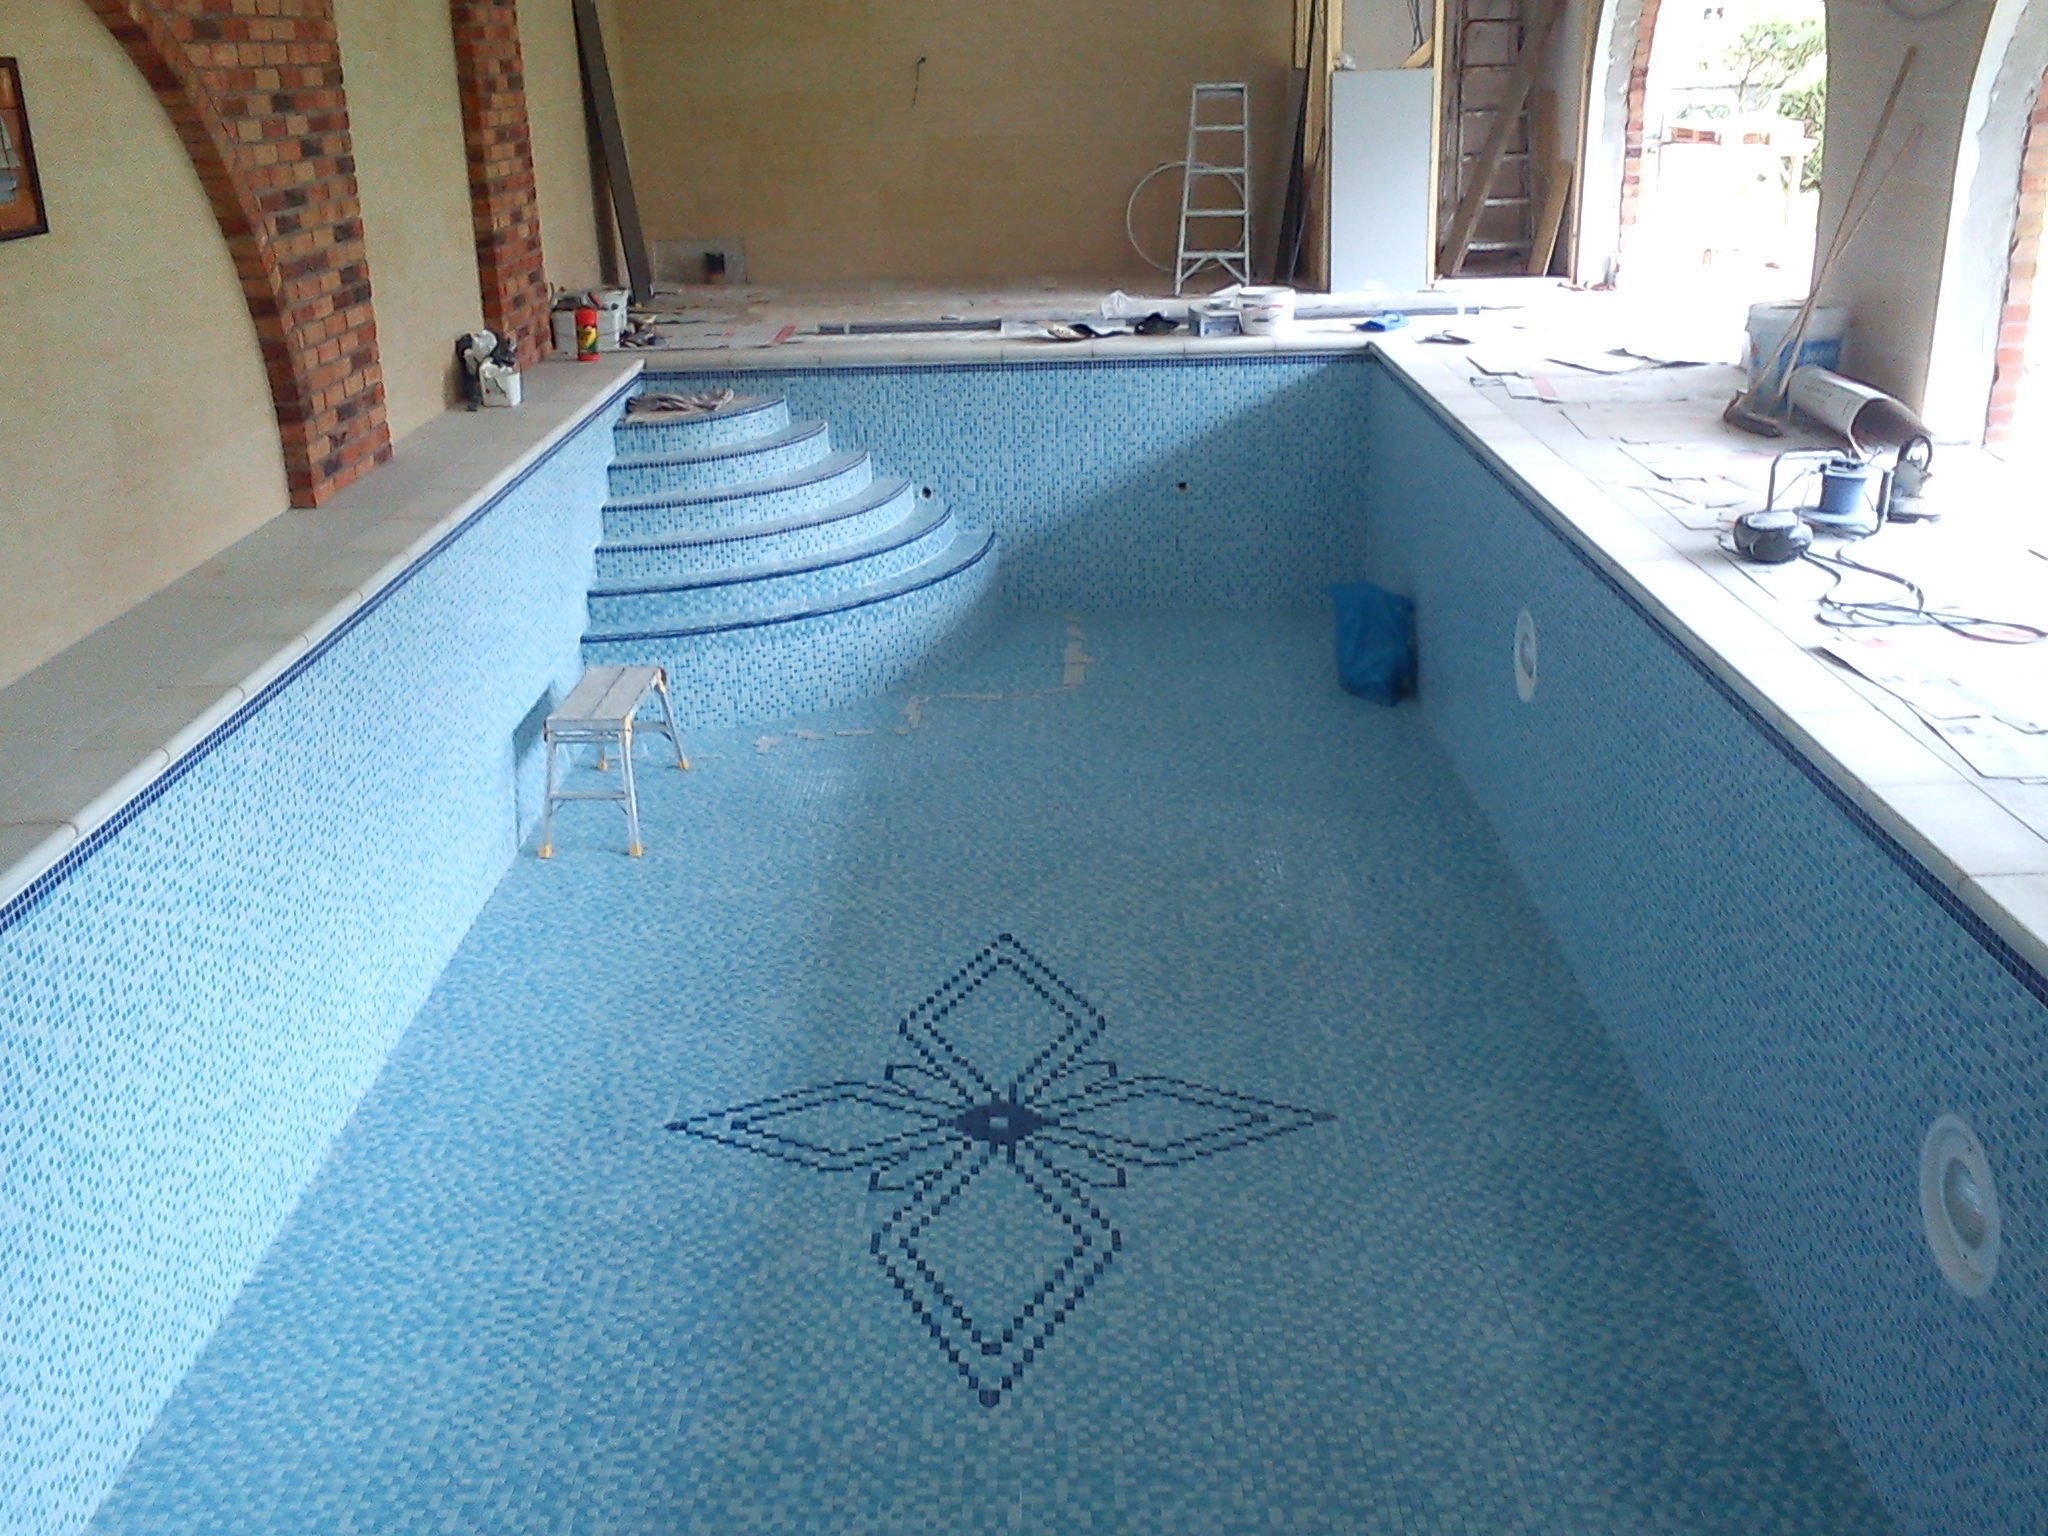 Paul Gilbert Wall and Floor Tile Fixing, Stoke on Trent, Staffordshire